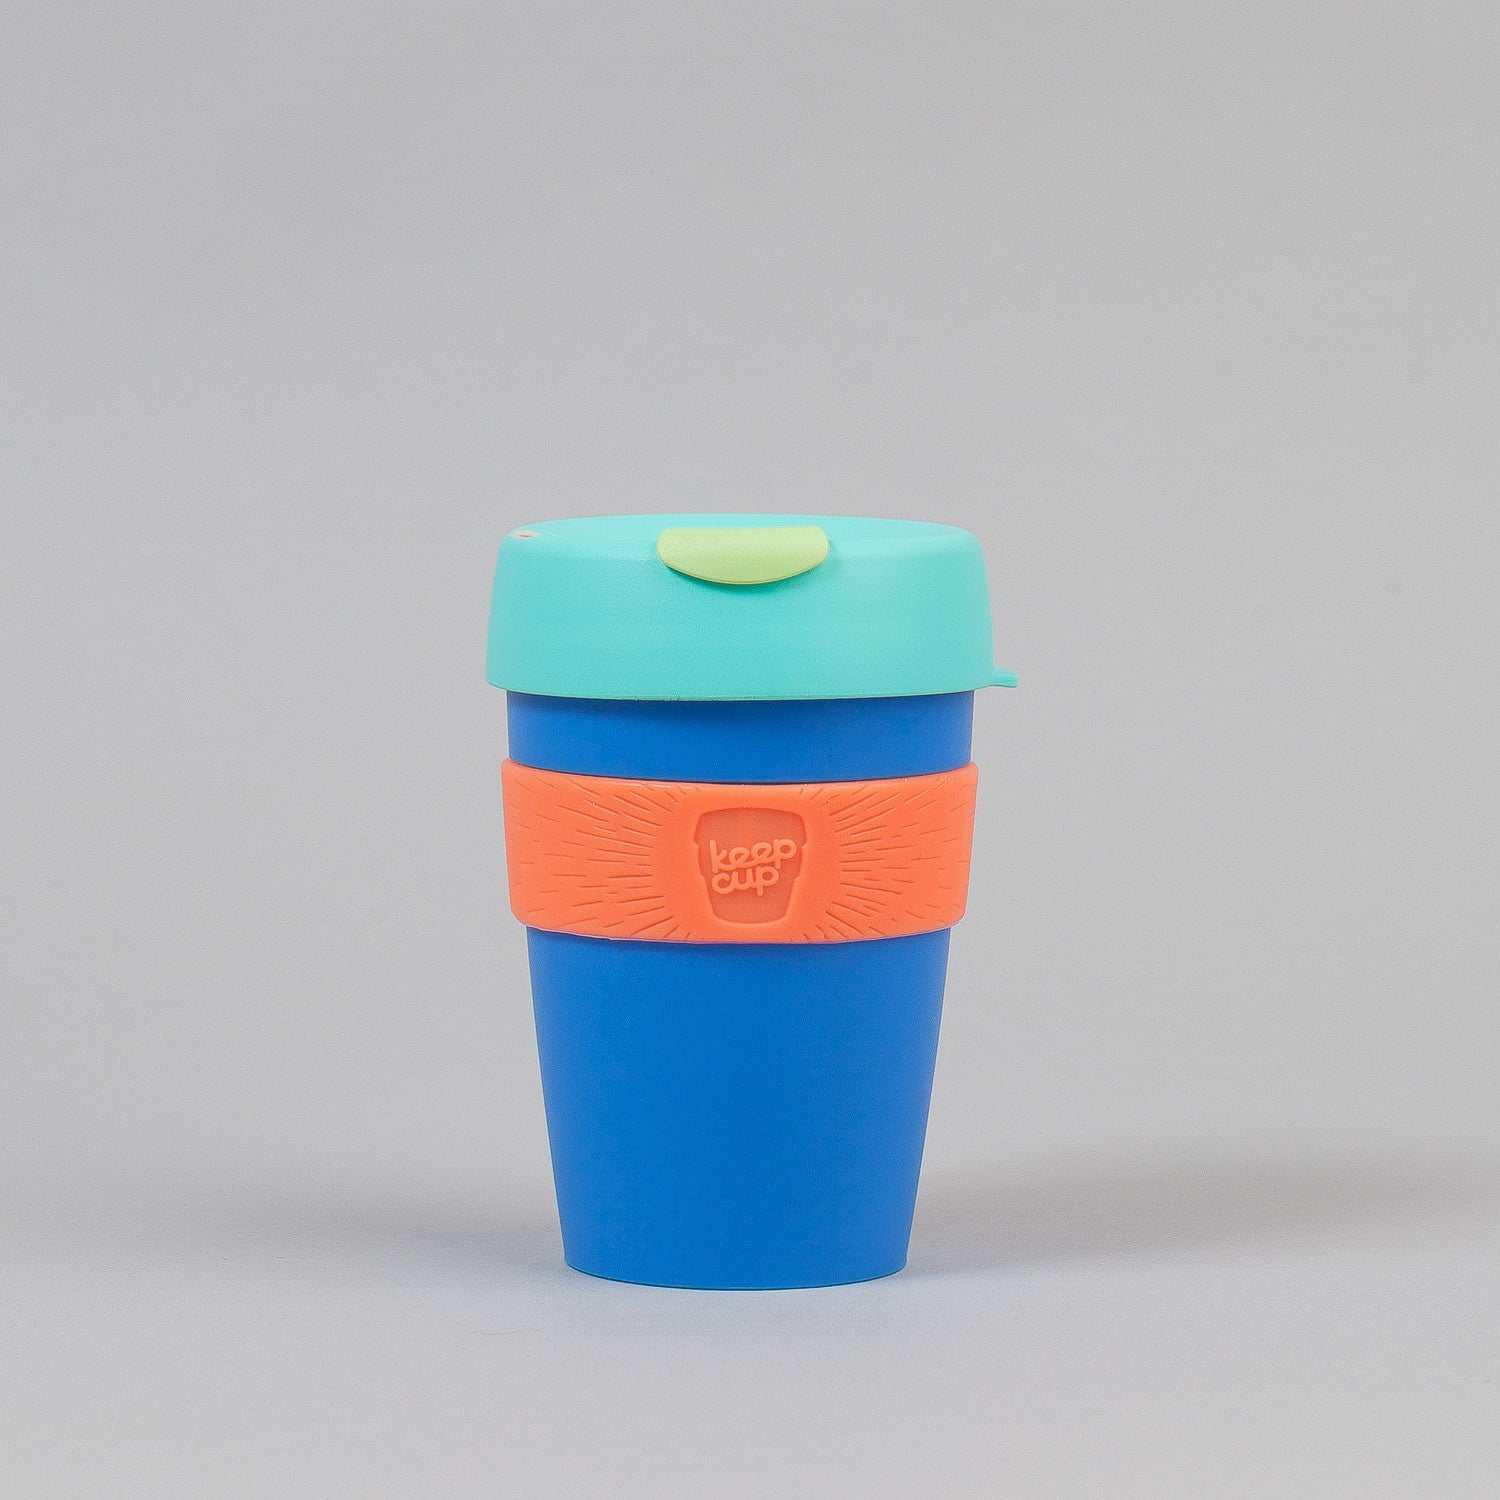 KeepCup Melchior 12oz Medium Reusable Coffee Cup - New Blue / Mint